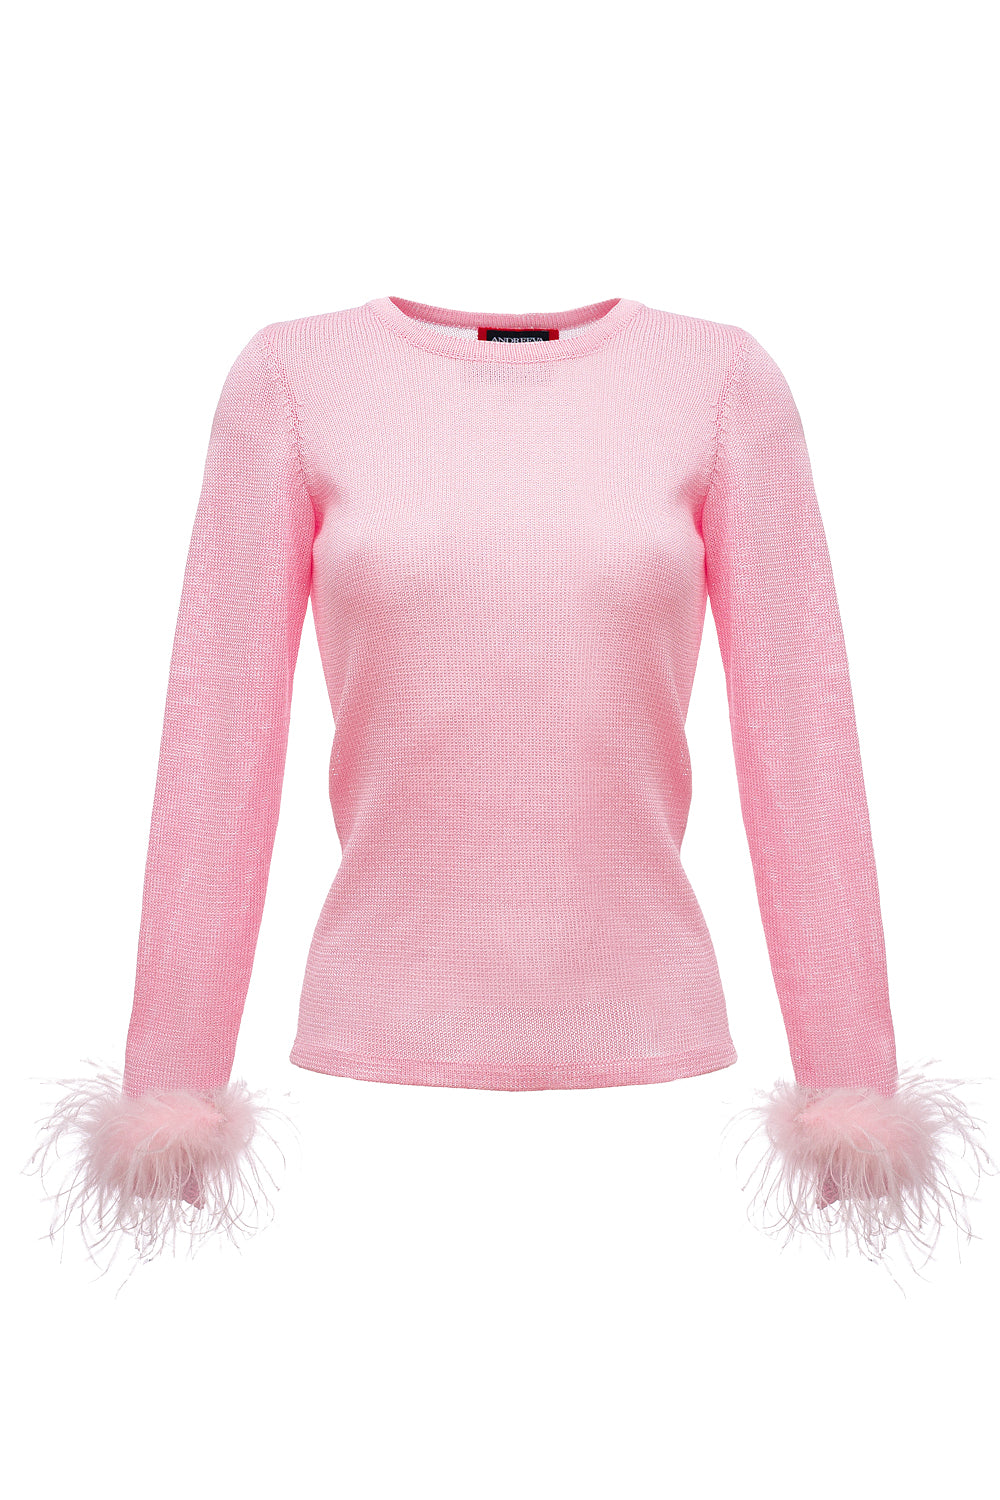 andreeva pink knit top